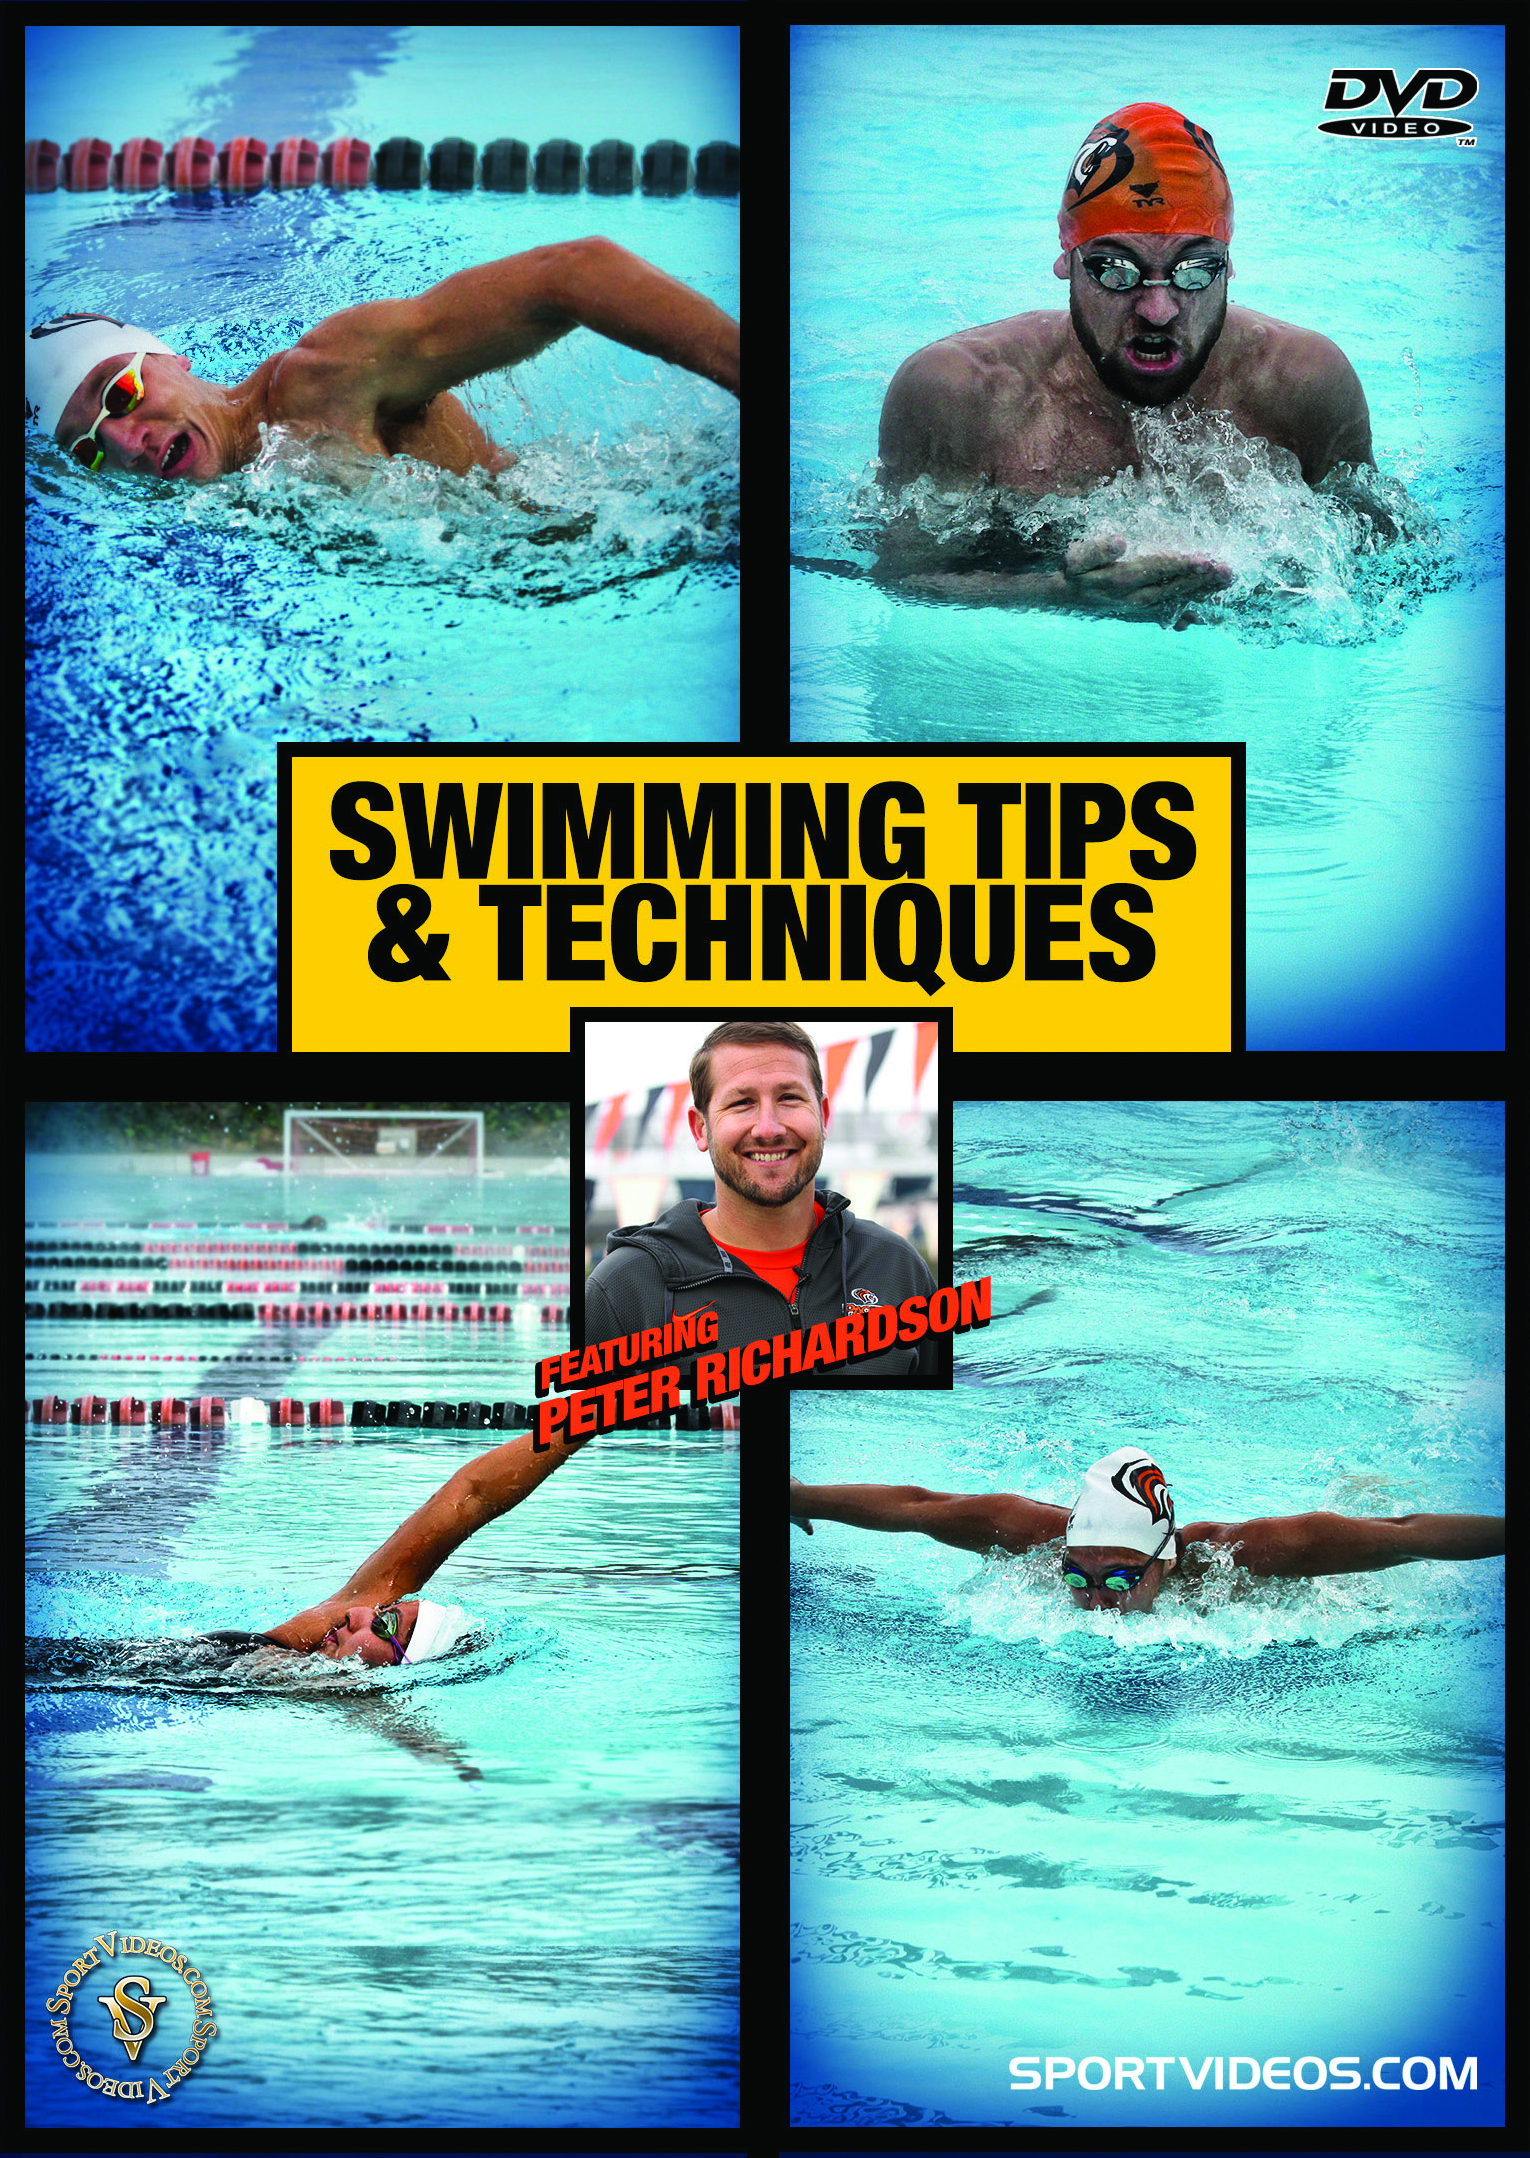 Swimming Tips and Techniques DVD or Download - Free Shipping